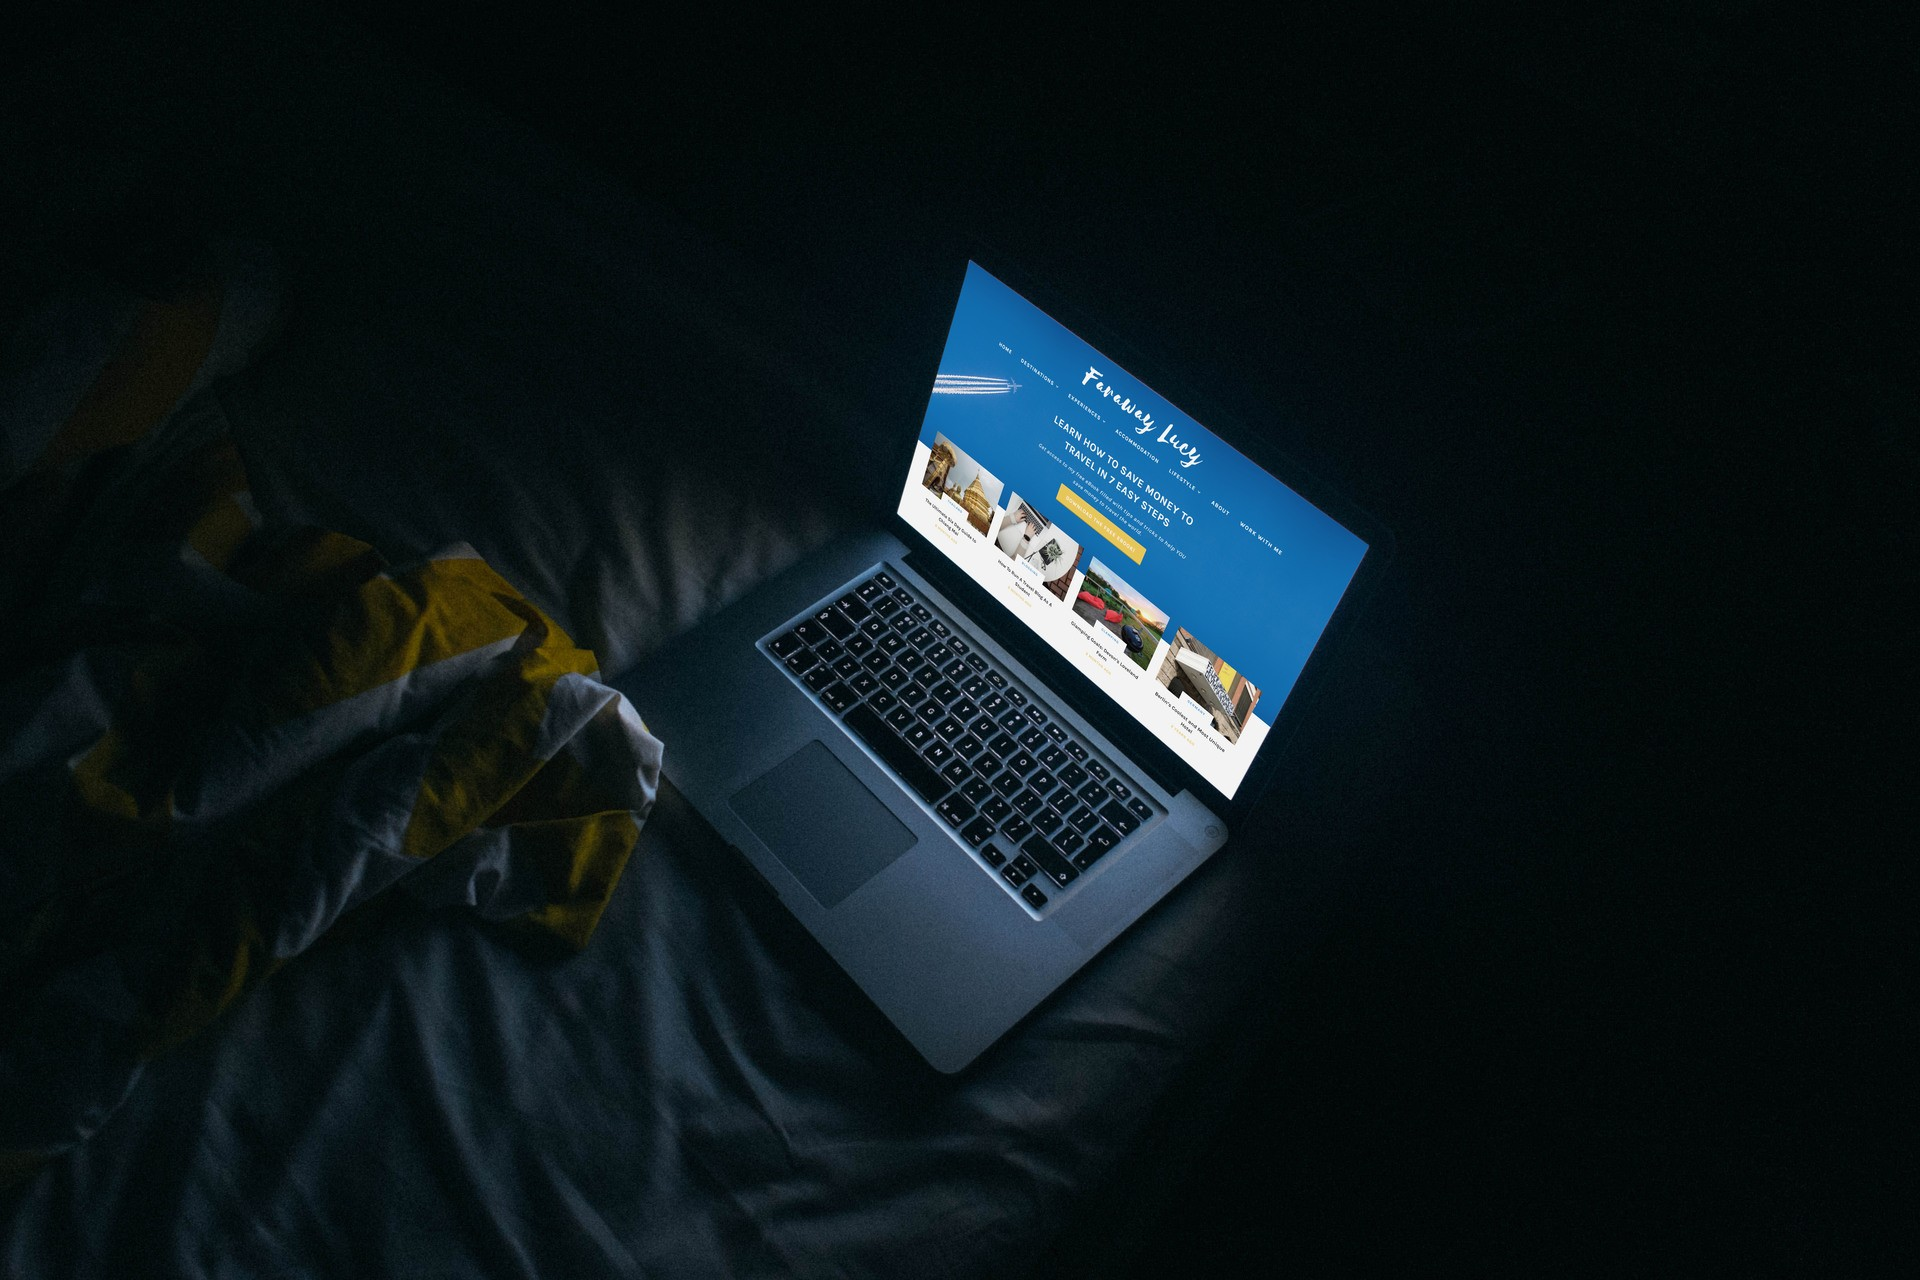 Faraway Lucy travel blog Lucy Ronan laptop with website on screen in dark room at night on a bed How to Get Into Marketing with an English Degree